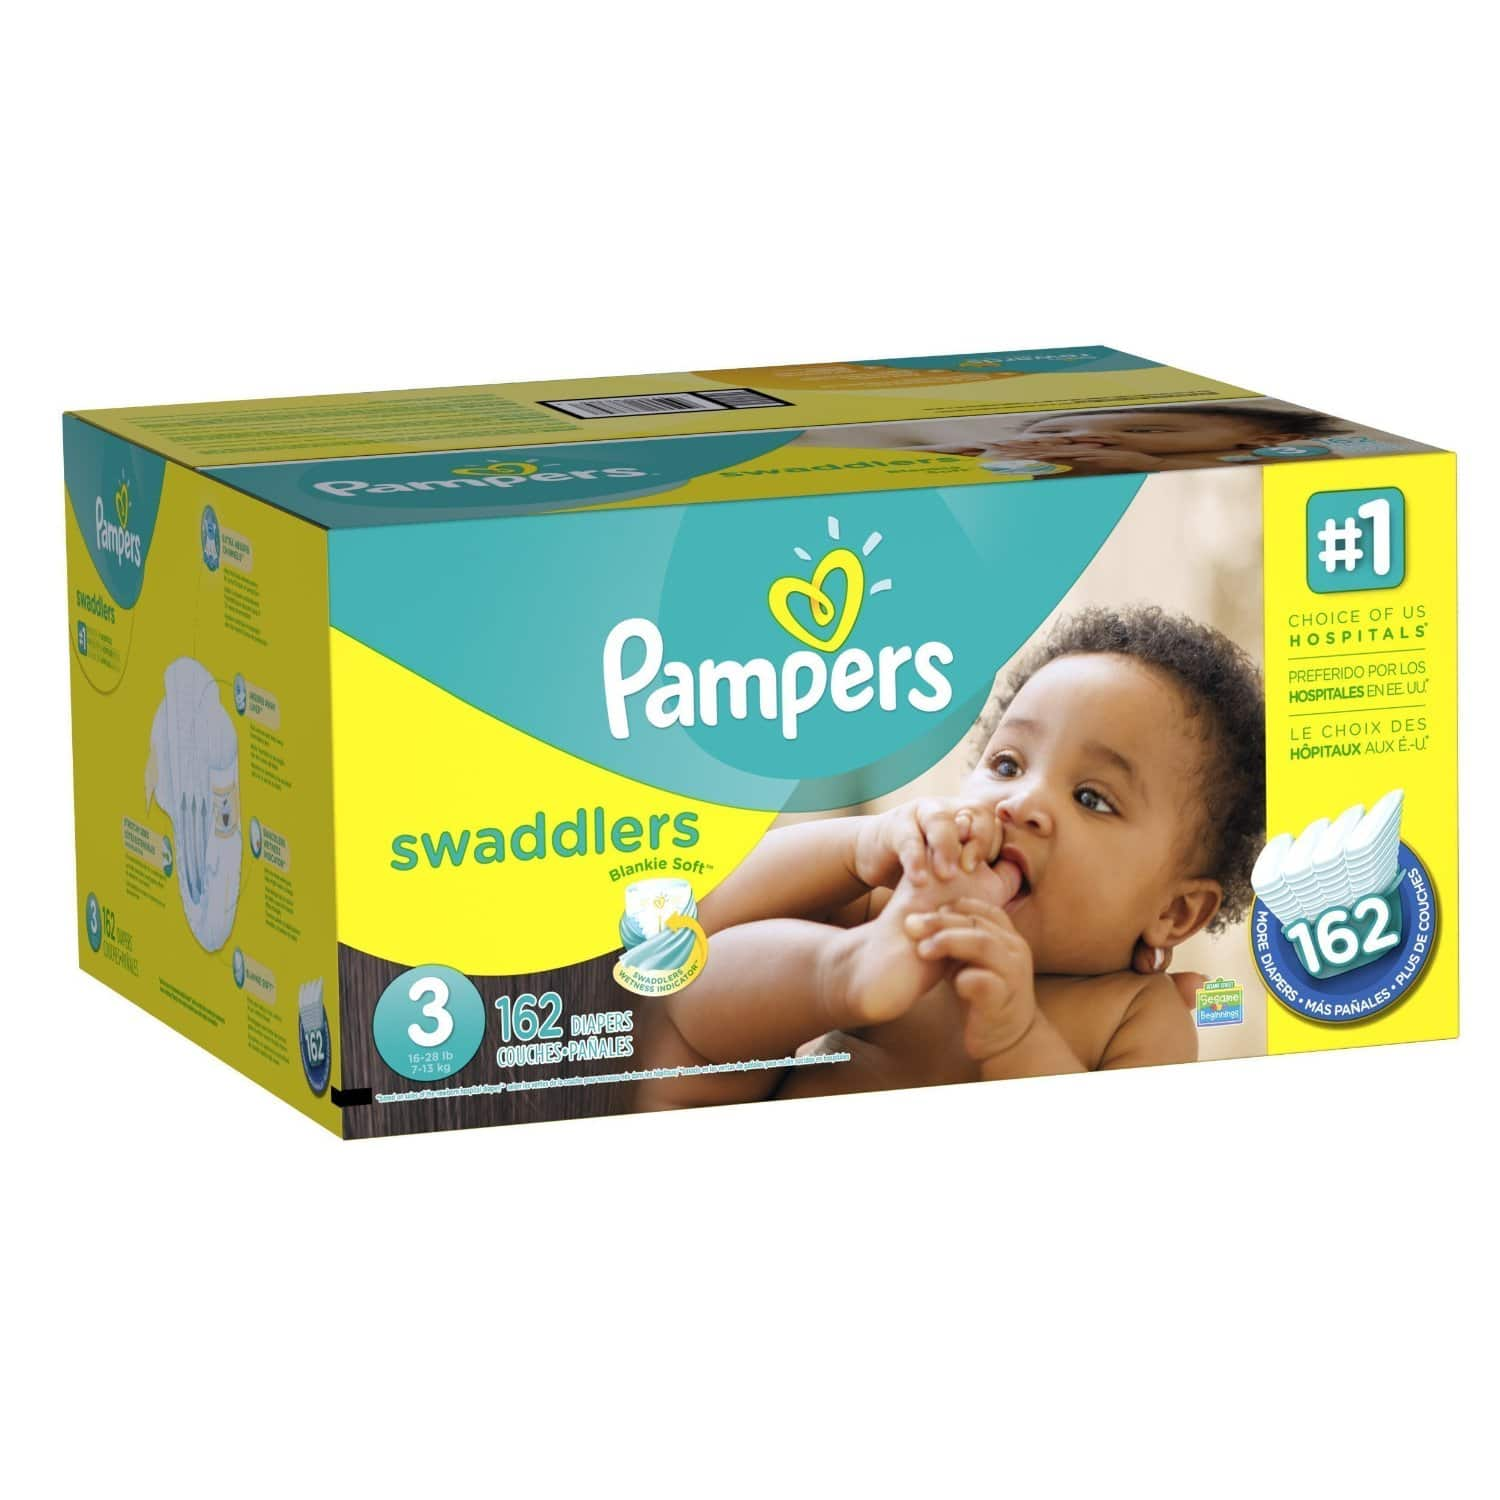 Amazon Family Members: Pampers Swaddlers & More  30% Off + 20% Off + Free Shipping